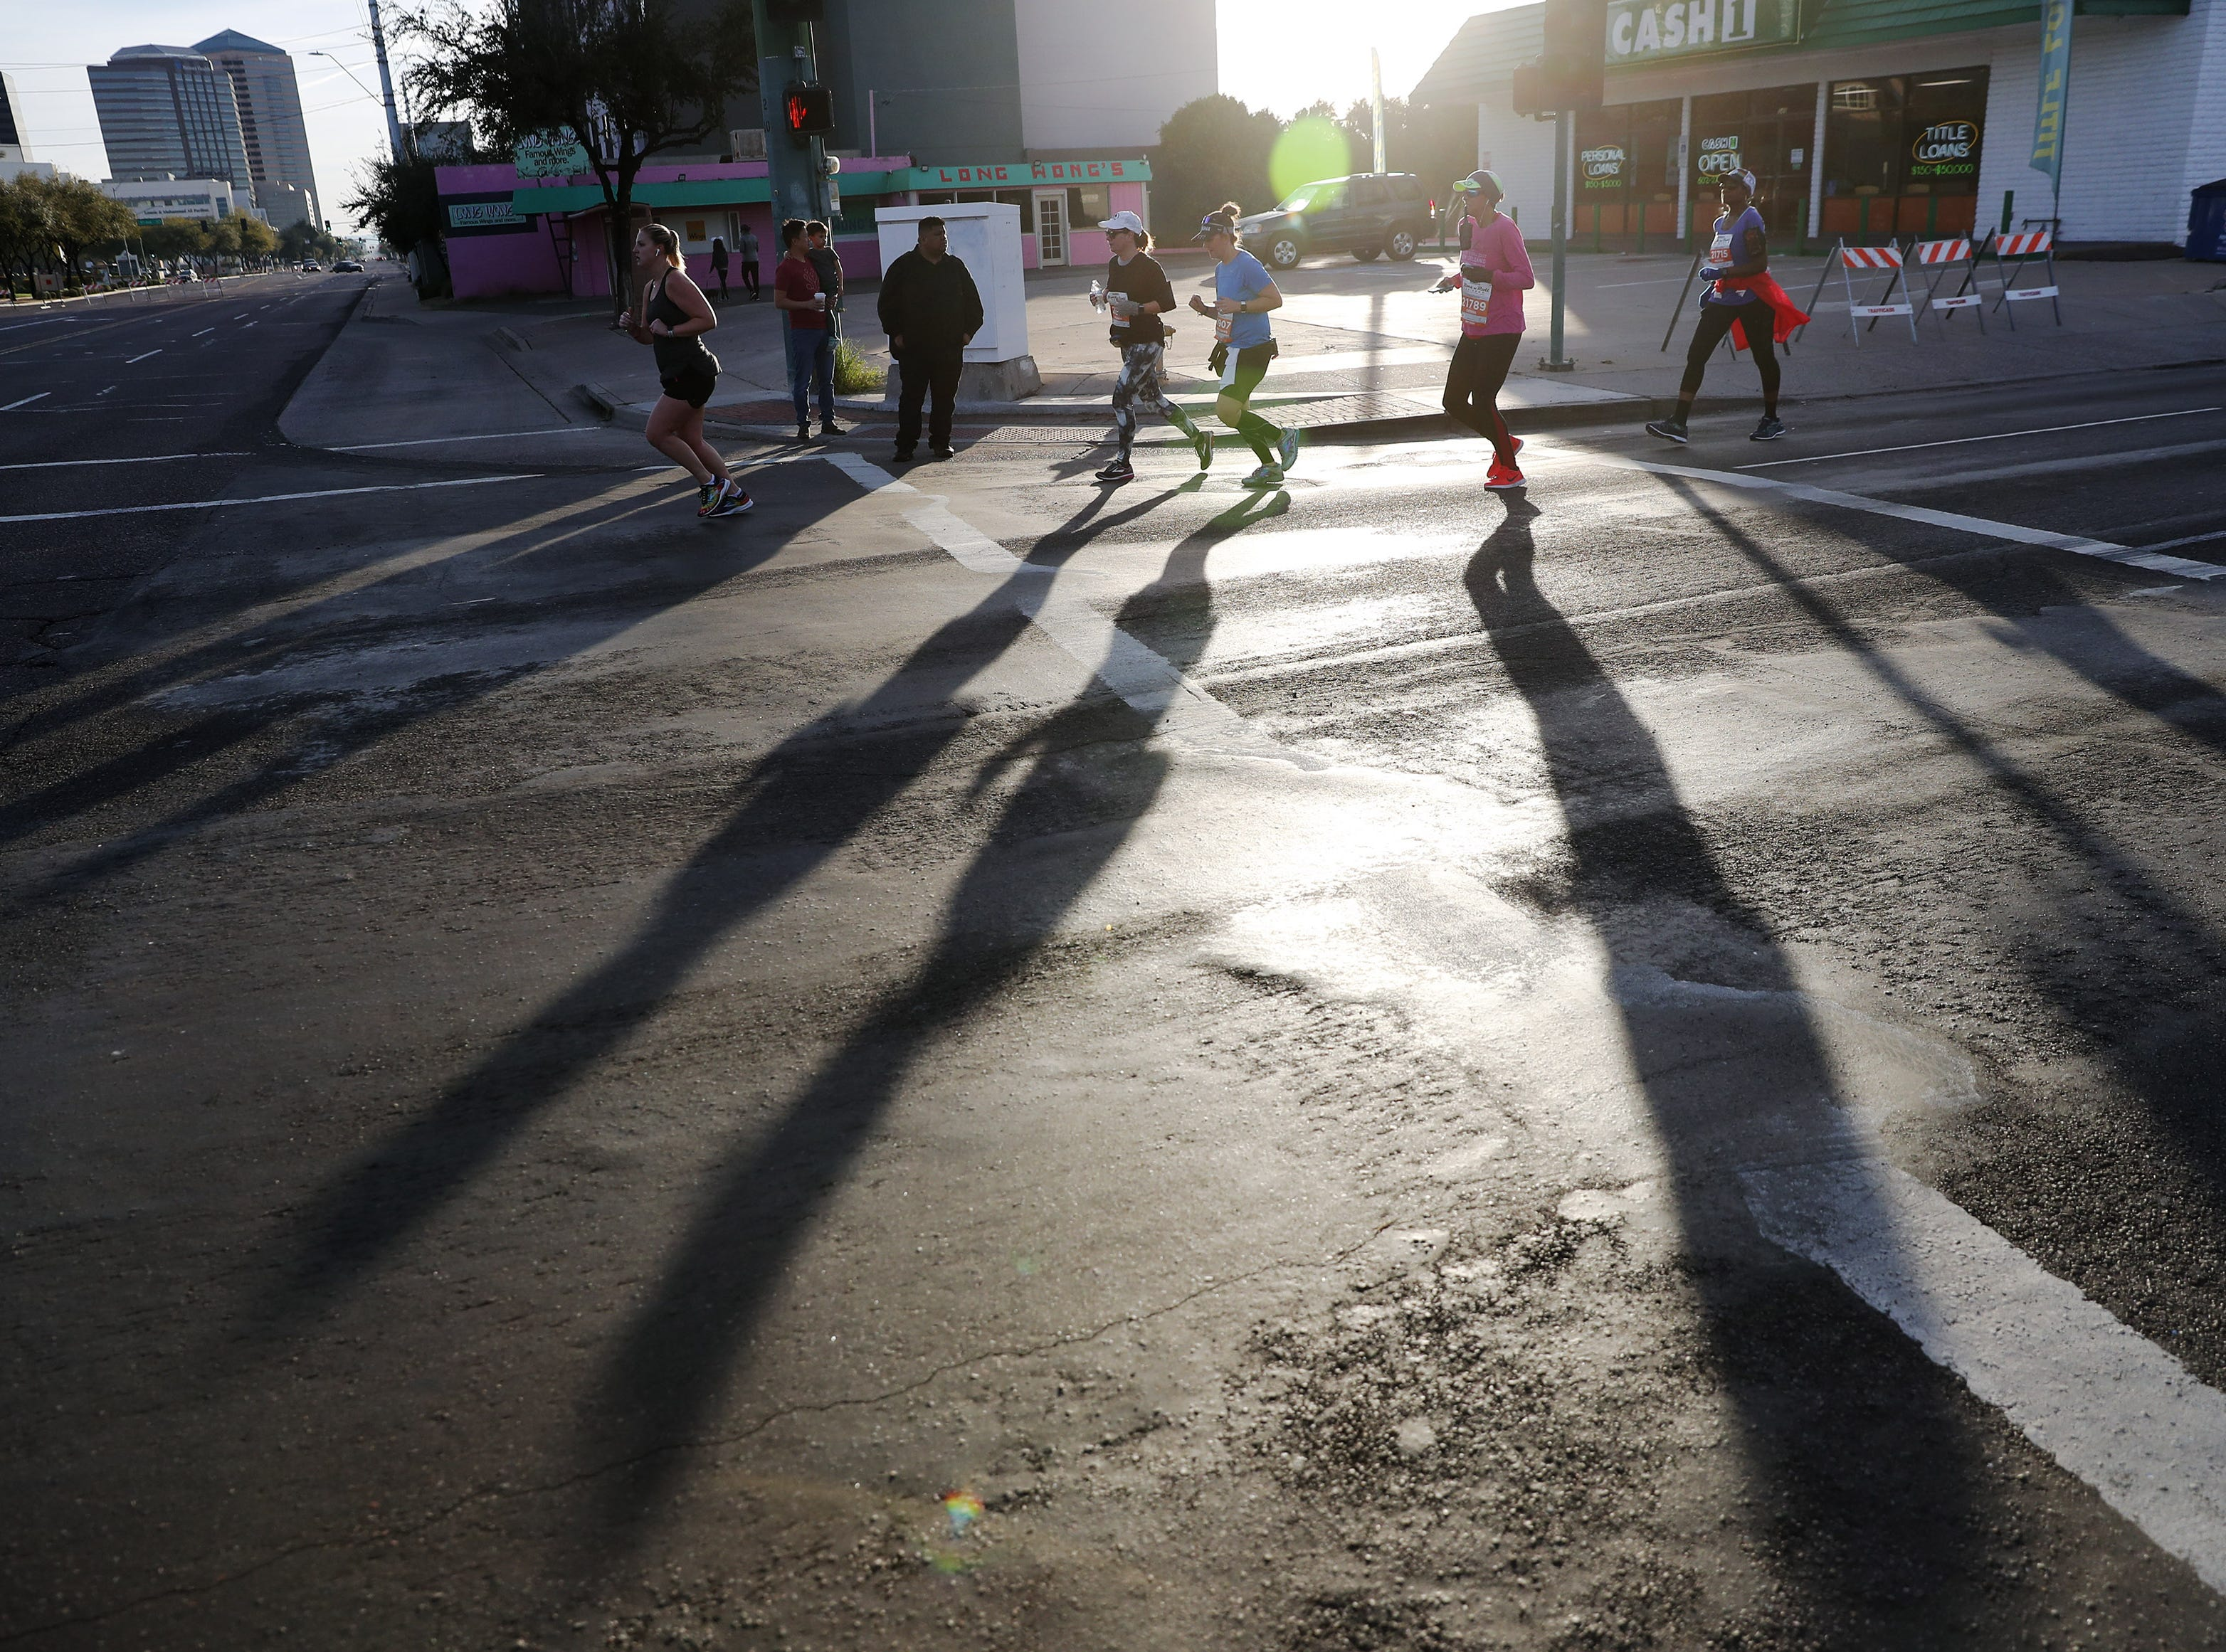 Runners cast shadows on 7th Ave. during the Rock 'n' Roll Marathon in Phoenix Jan. 20, 2019.